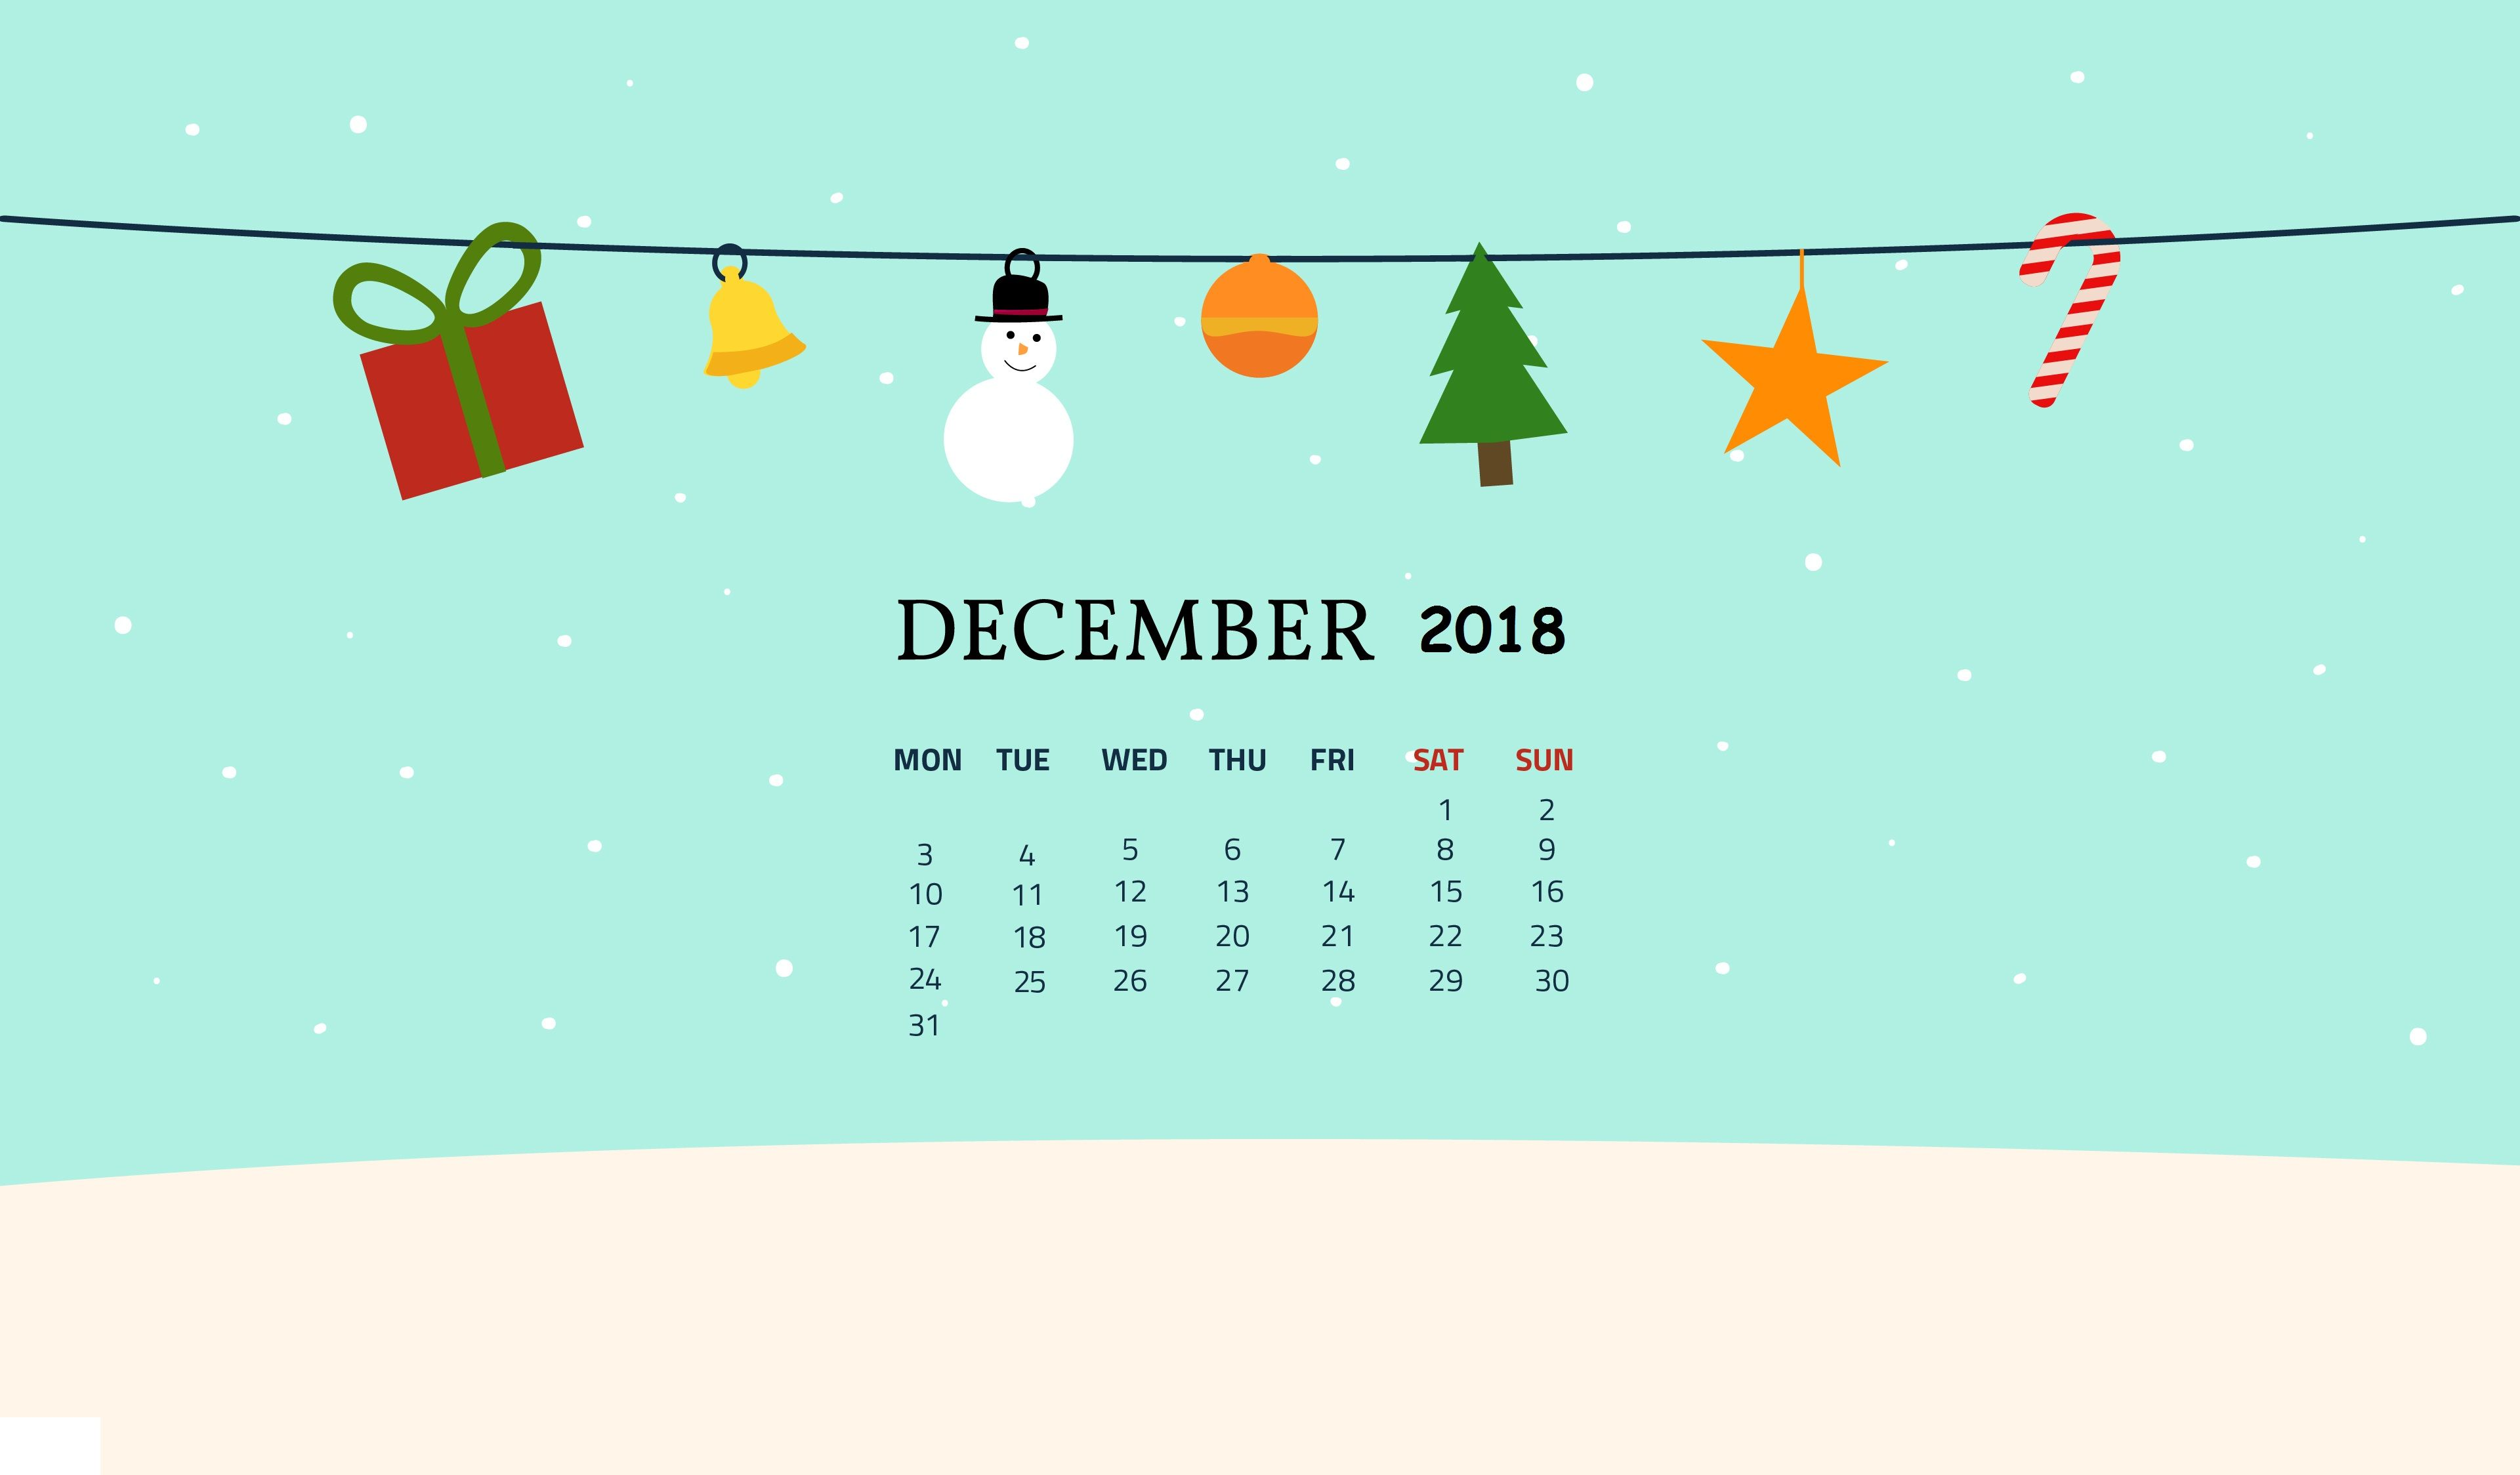 Free December 2018 Desktop Wallpaper Calendar wallpaper